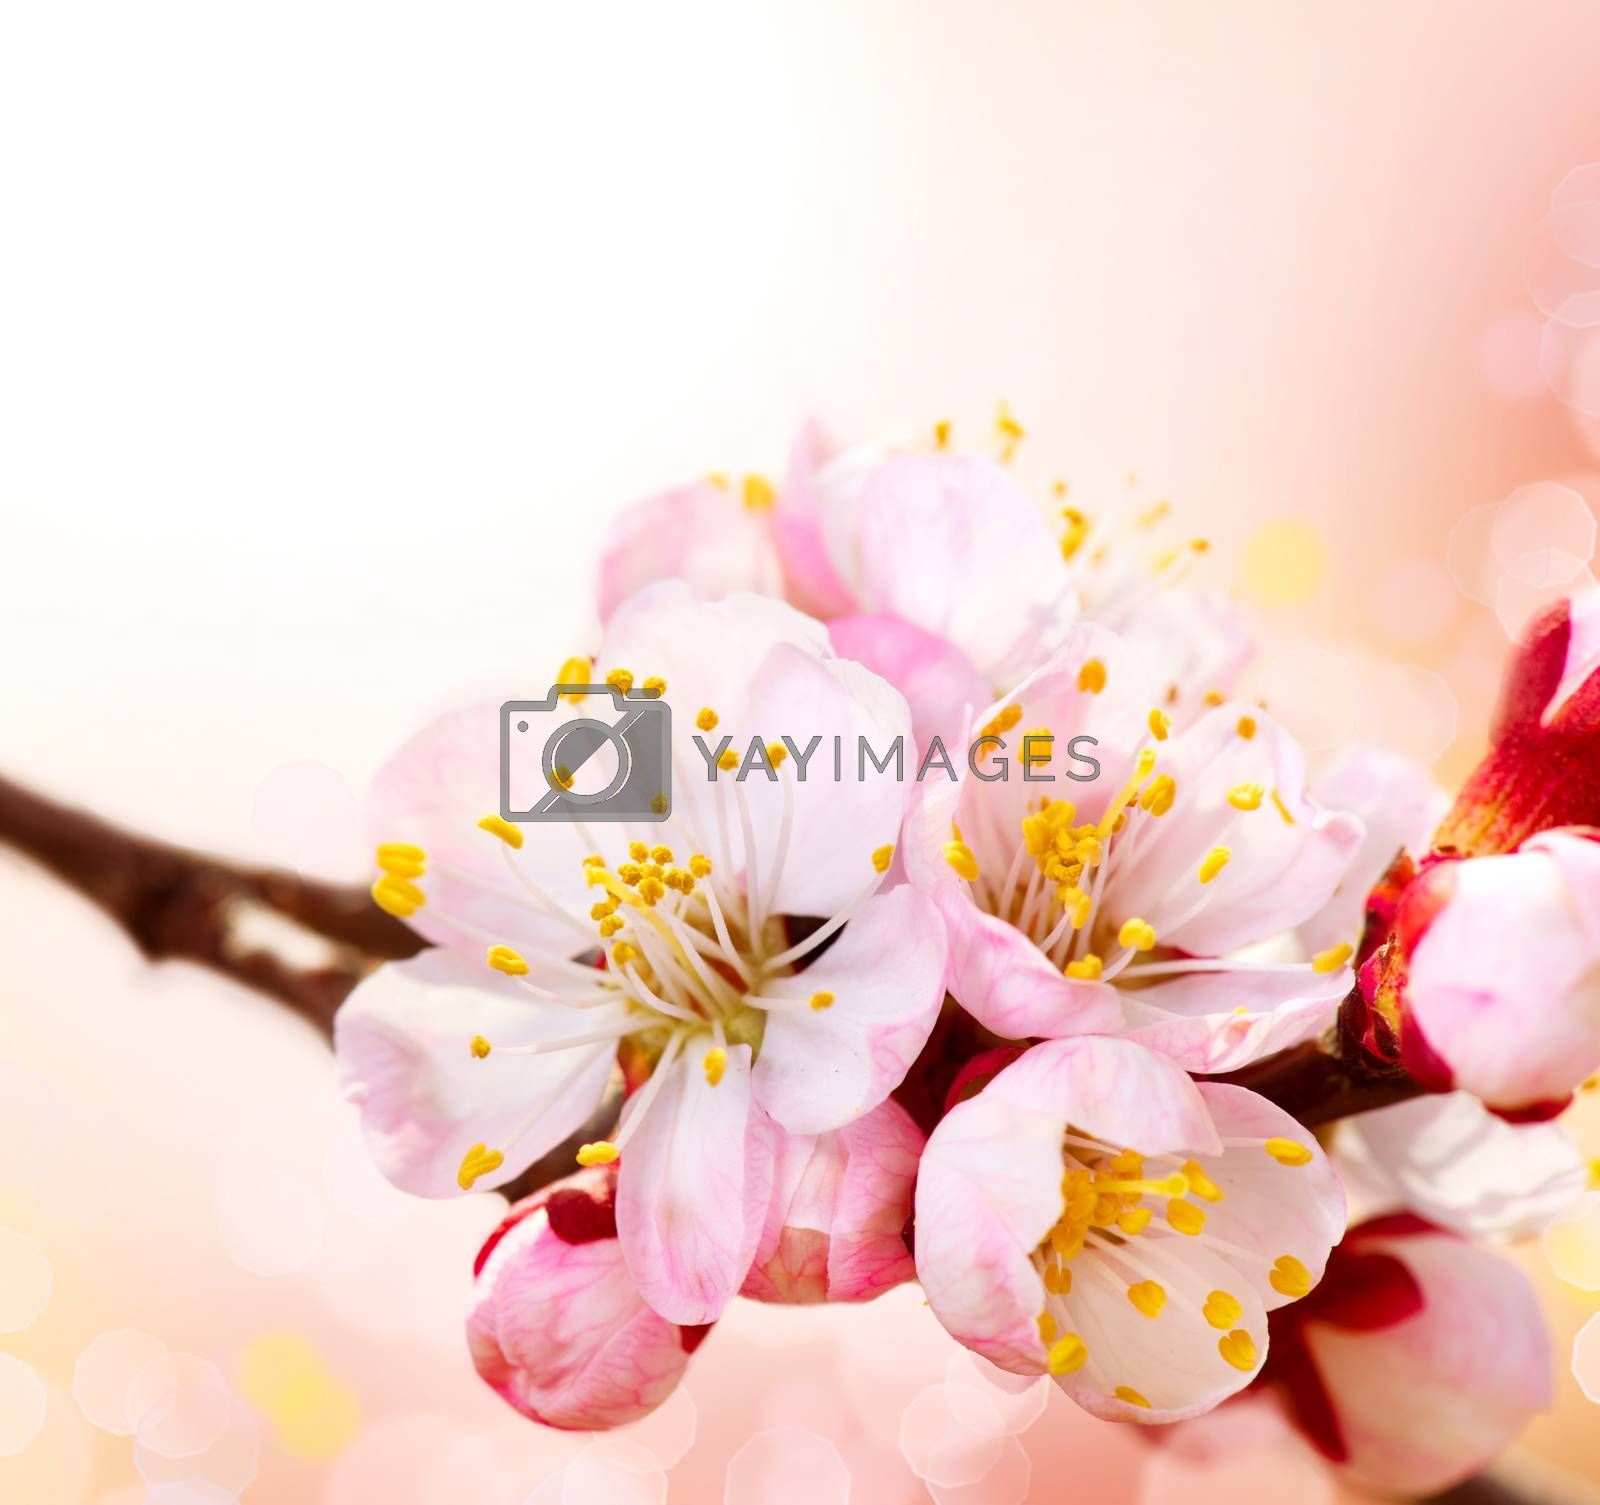 Spring Blossom. Apricot Flowers Border Art Design by Subbotina Anna